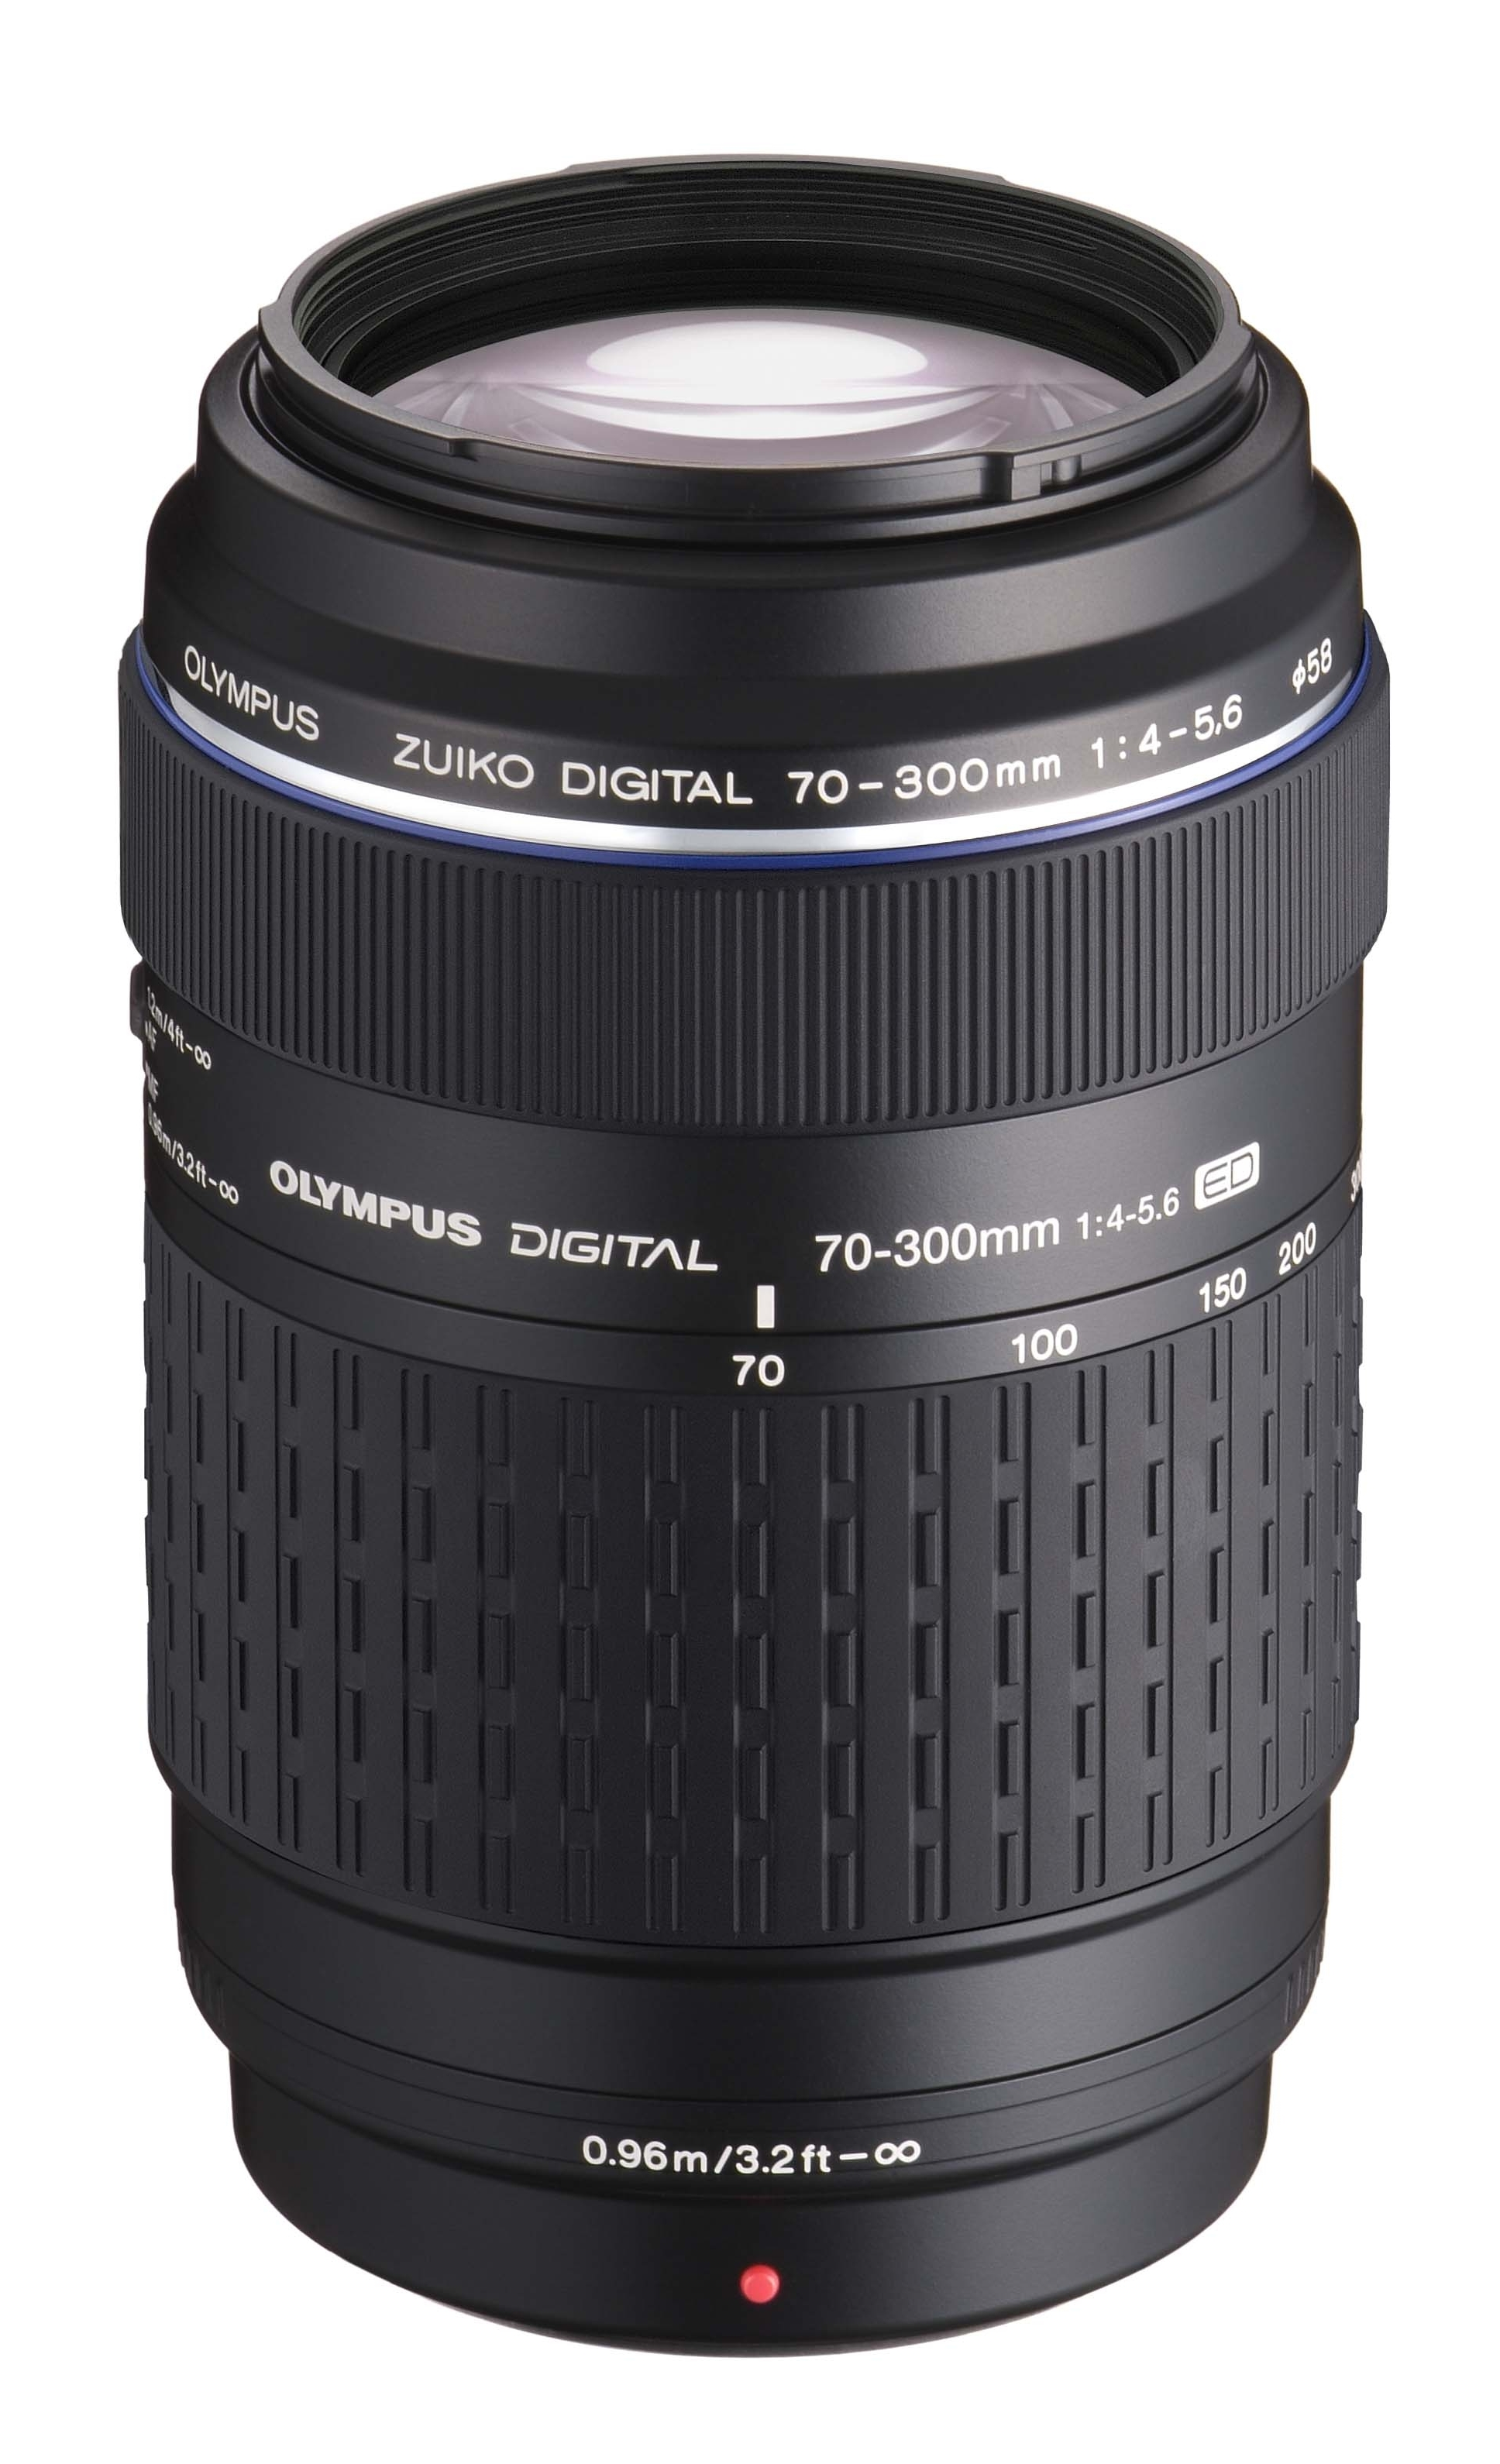 Olympus' 70-300mm zoom lens will ship in September.